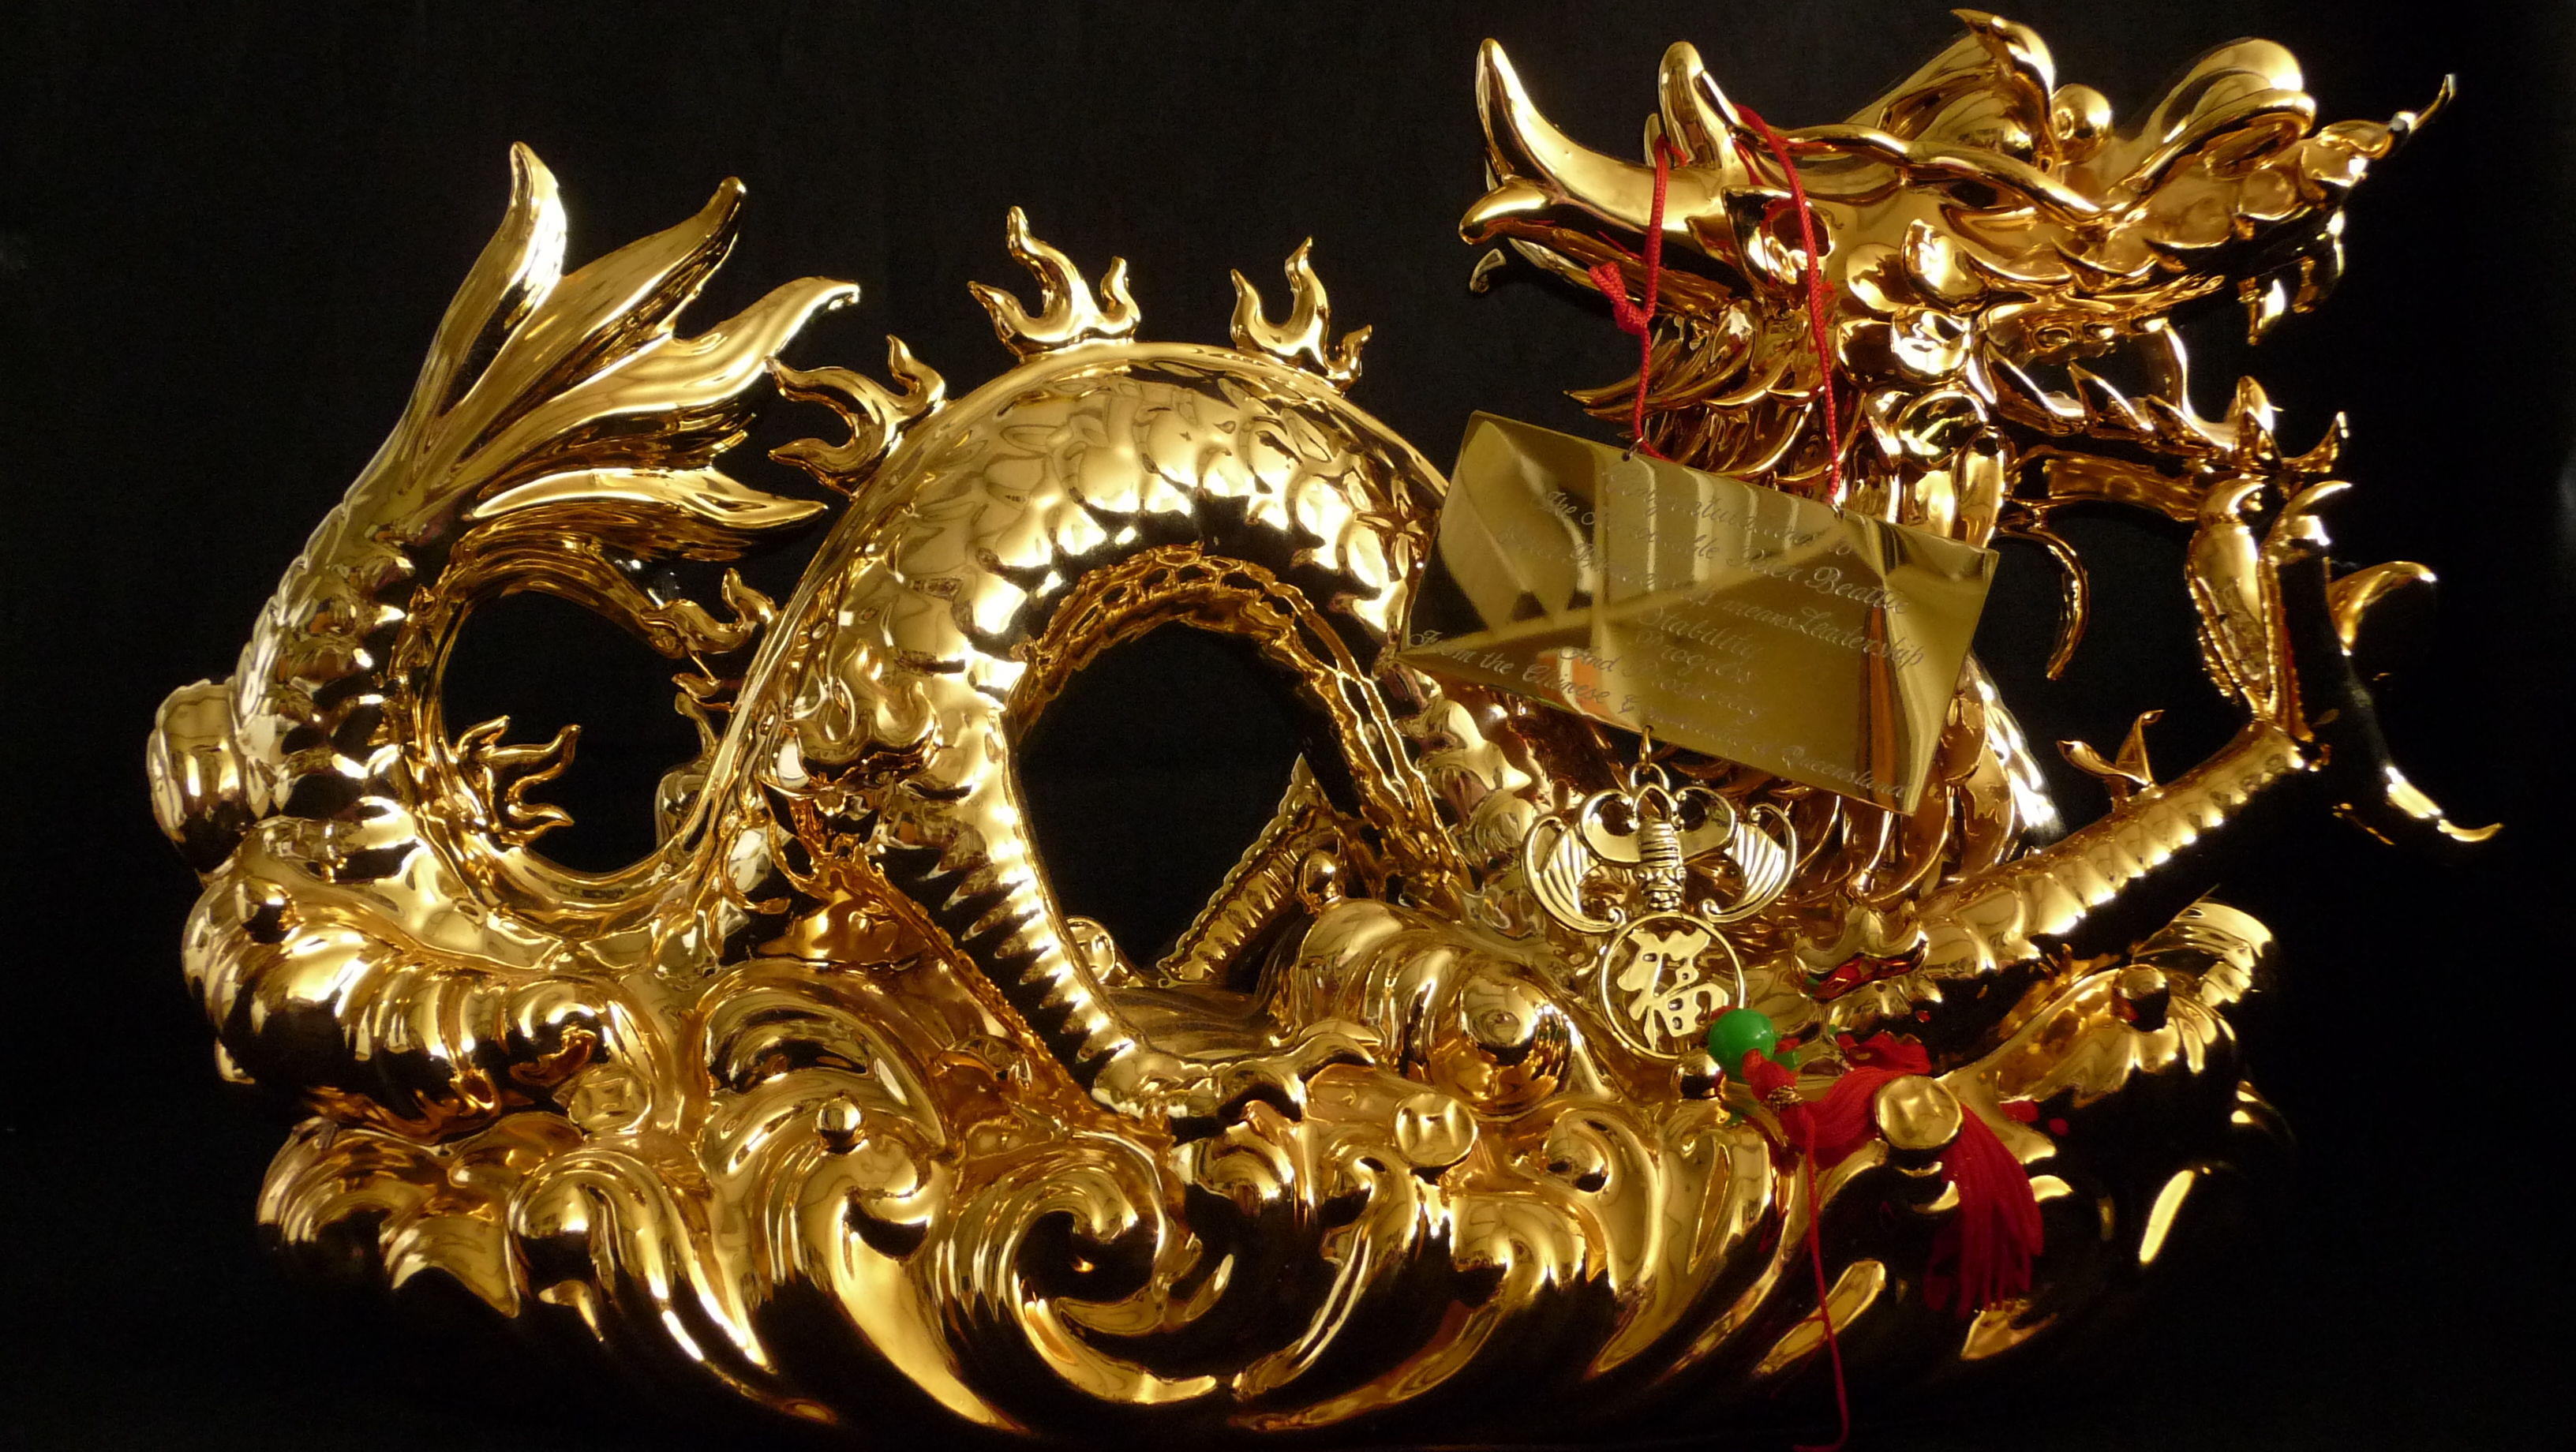 Description Chinese Dragon QM-r jpgRed Chinese Dragon Wallpaper